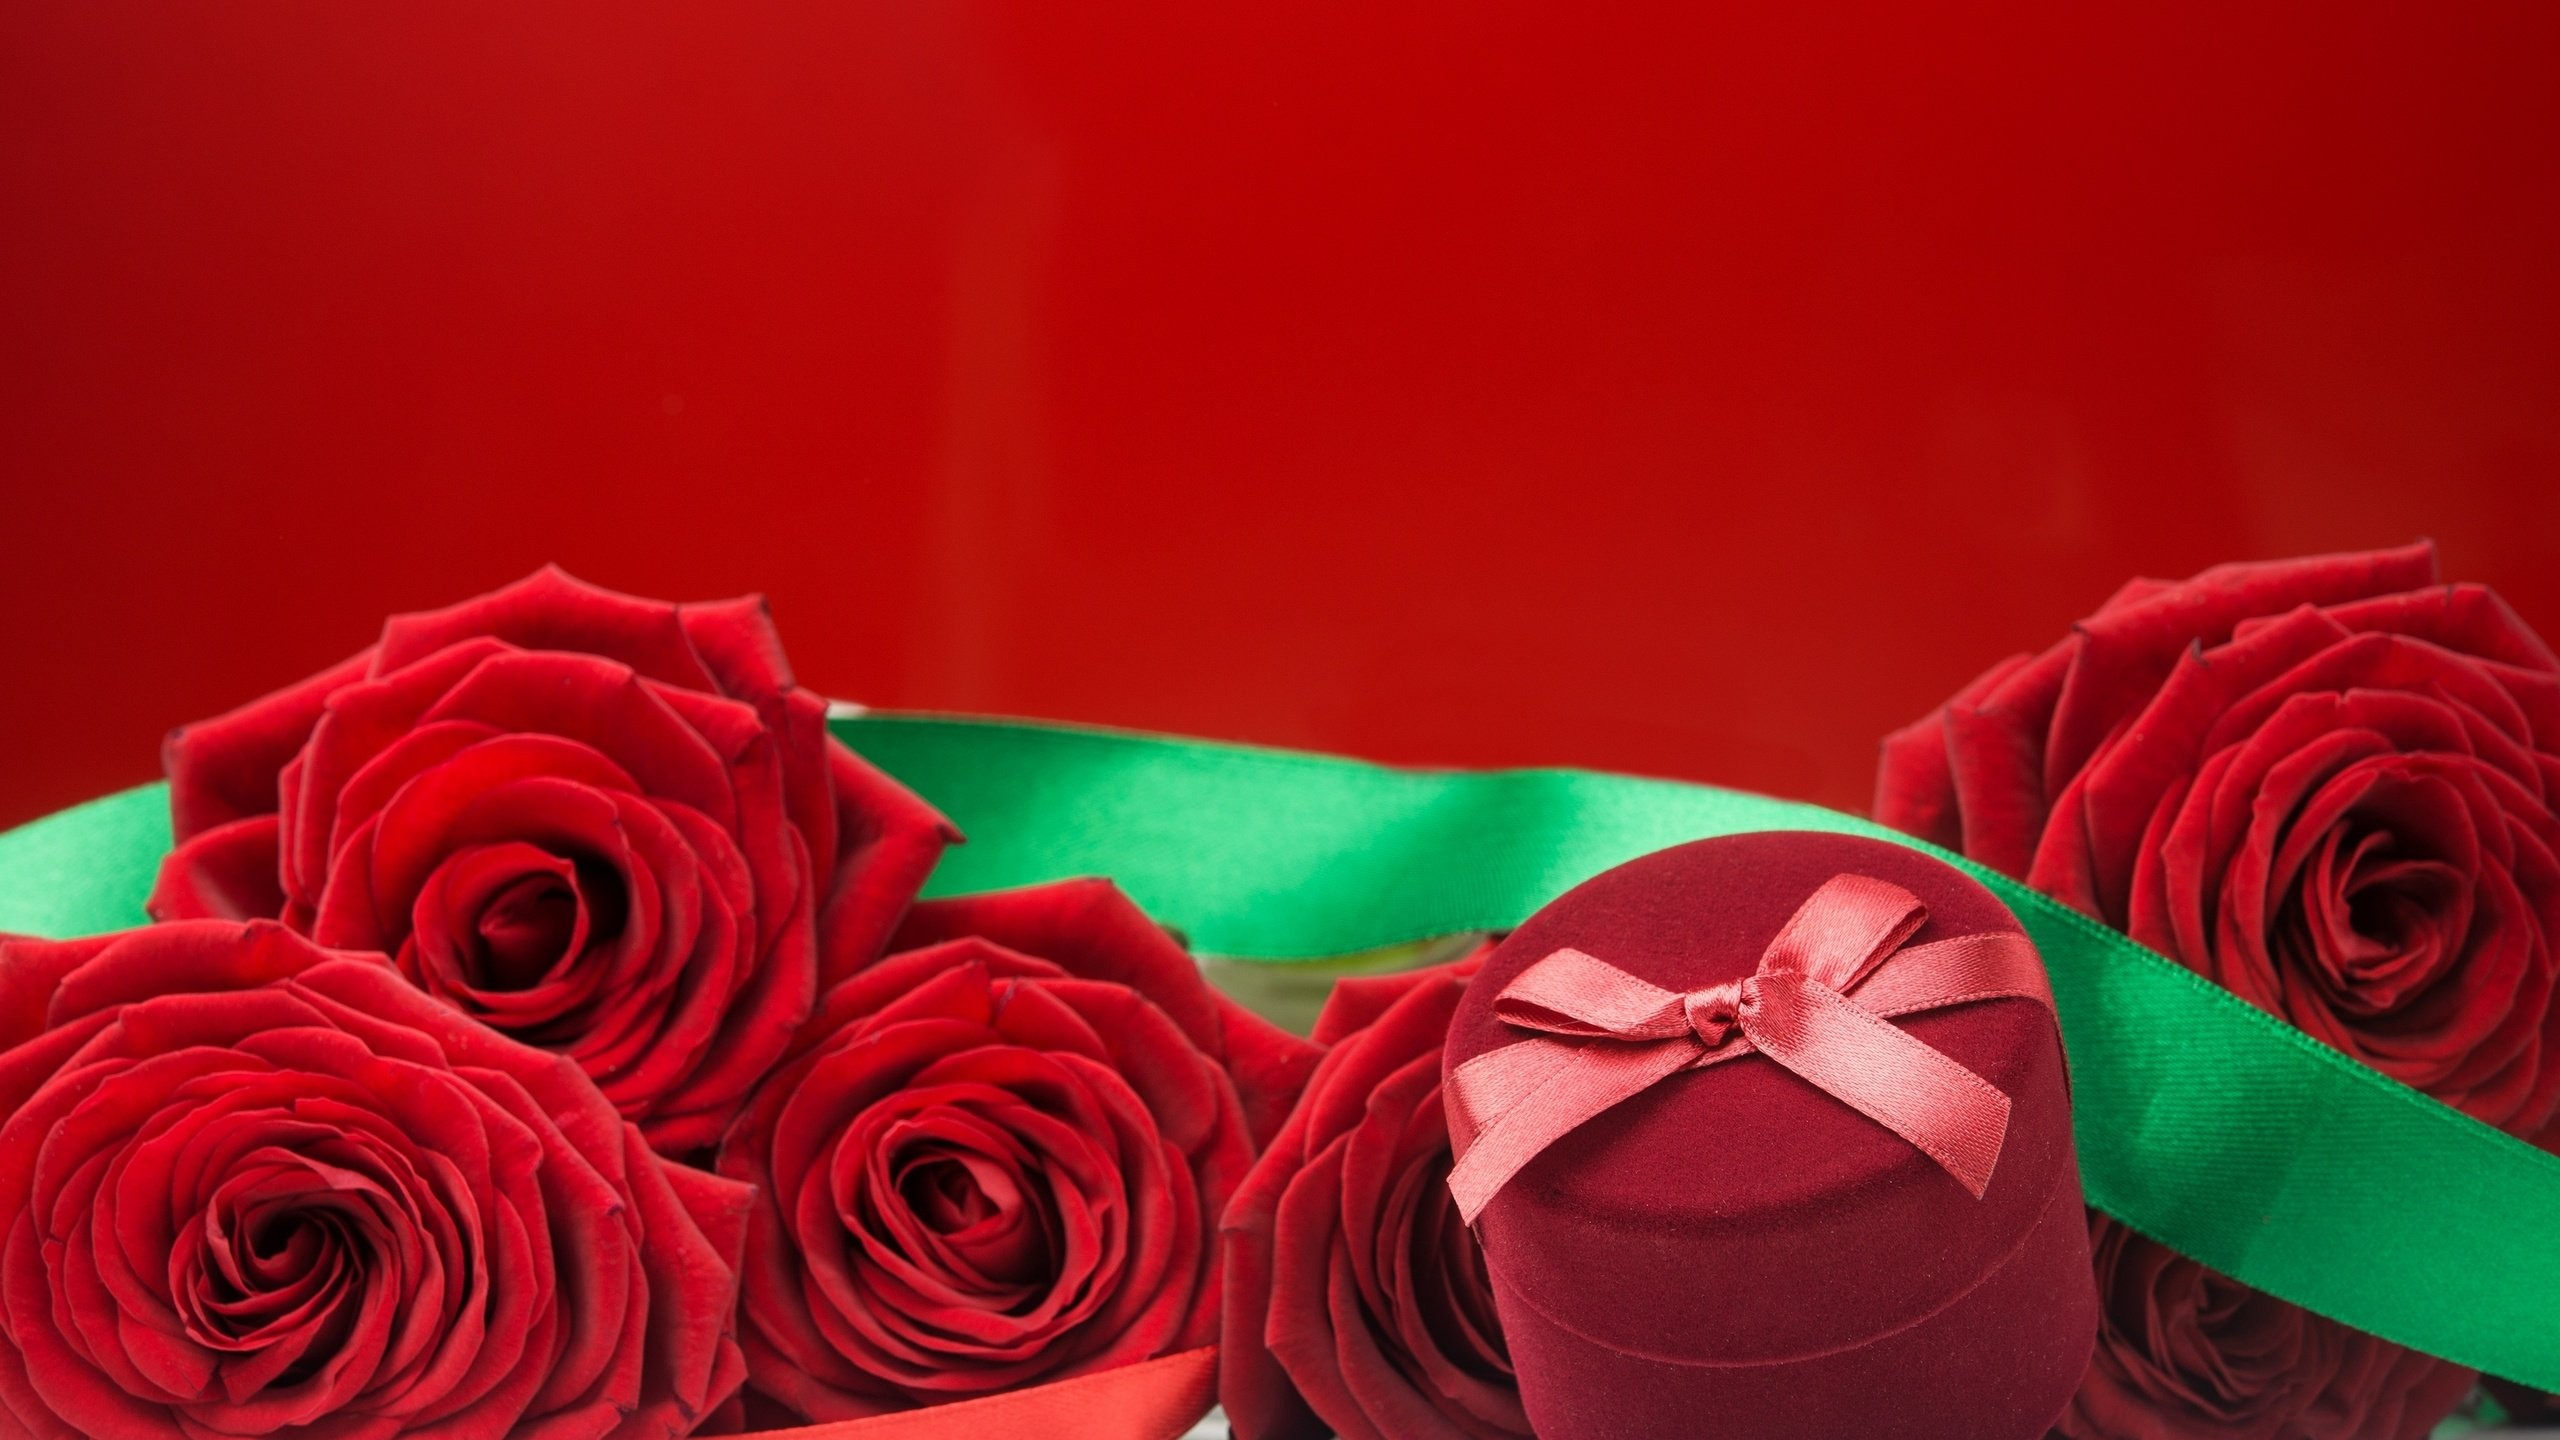 Women's Day Roses image free download